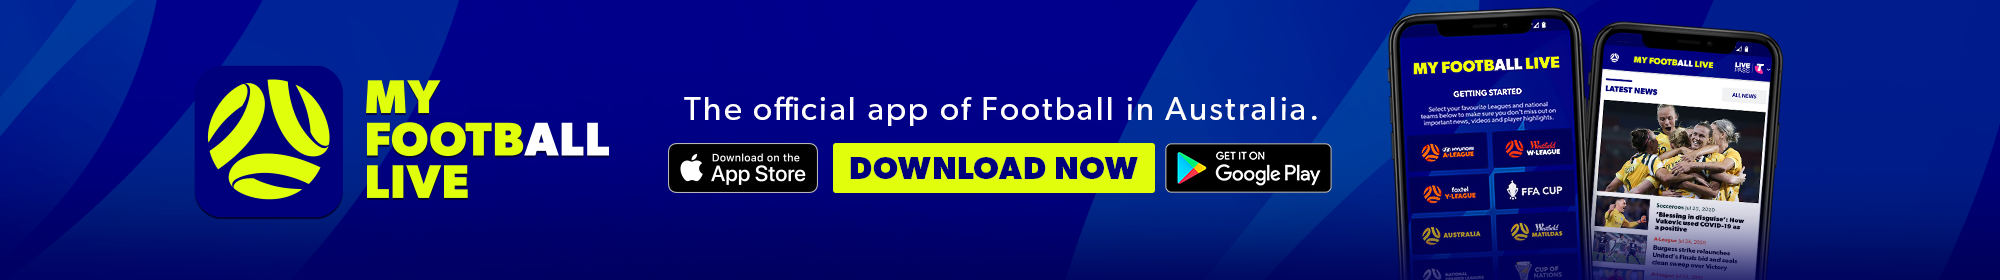 My Football Live App Thin Banner